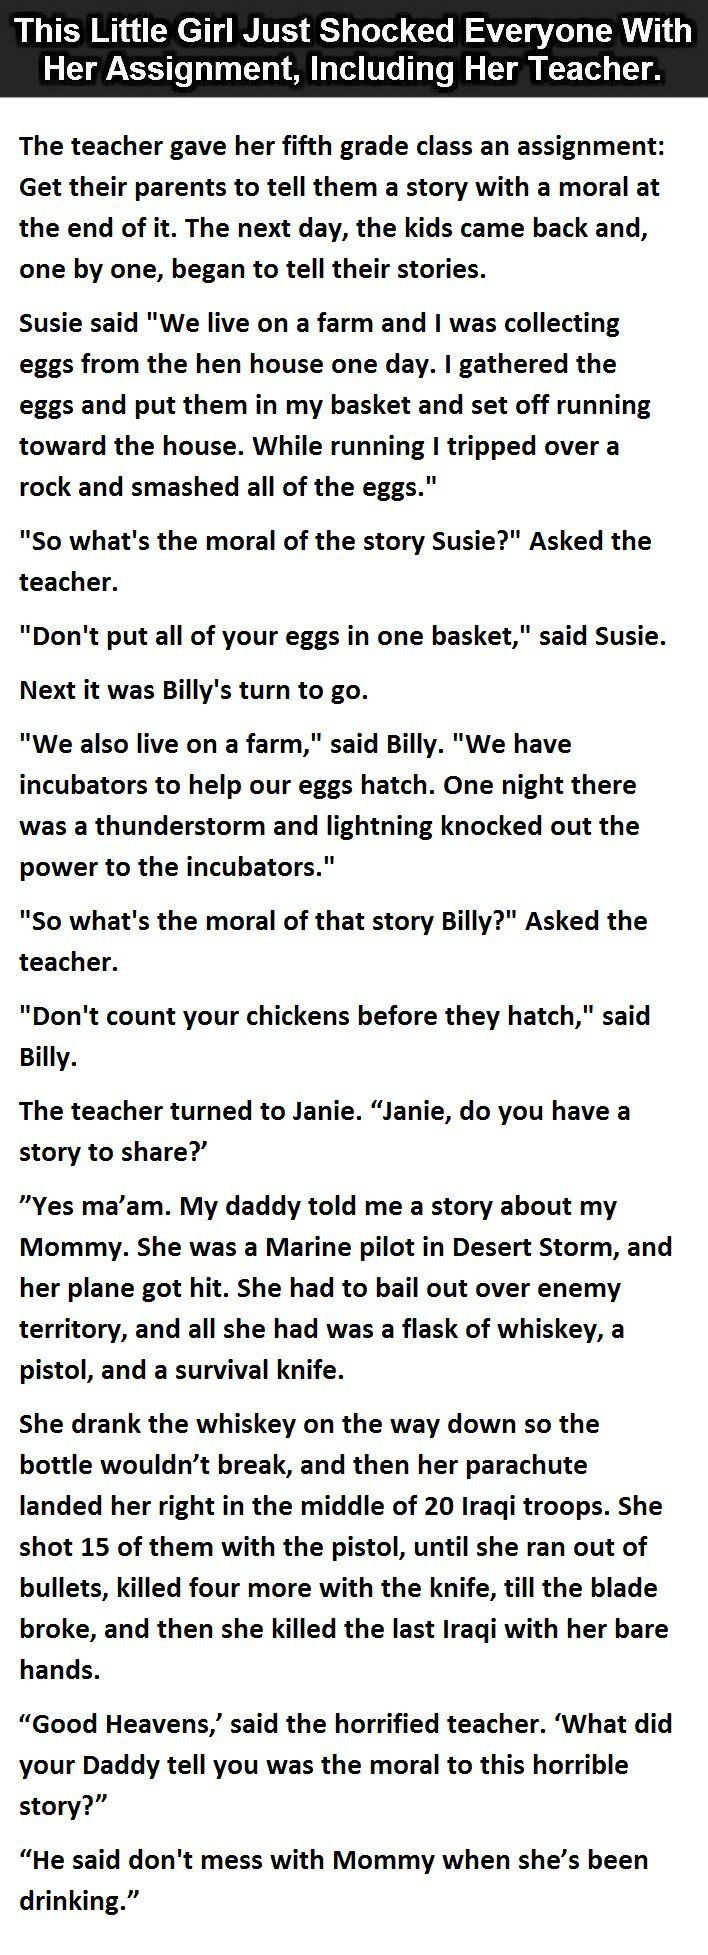 The Best Assignment Ever. This Little Girl Is Going Places.  #LOL #Funny #Hilarious